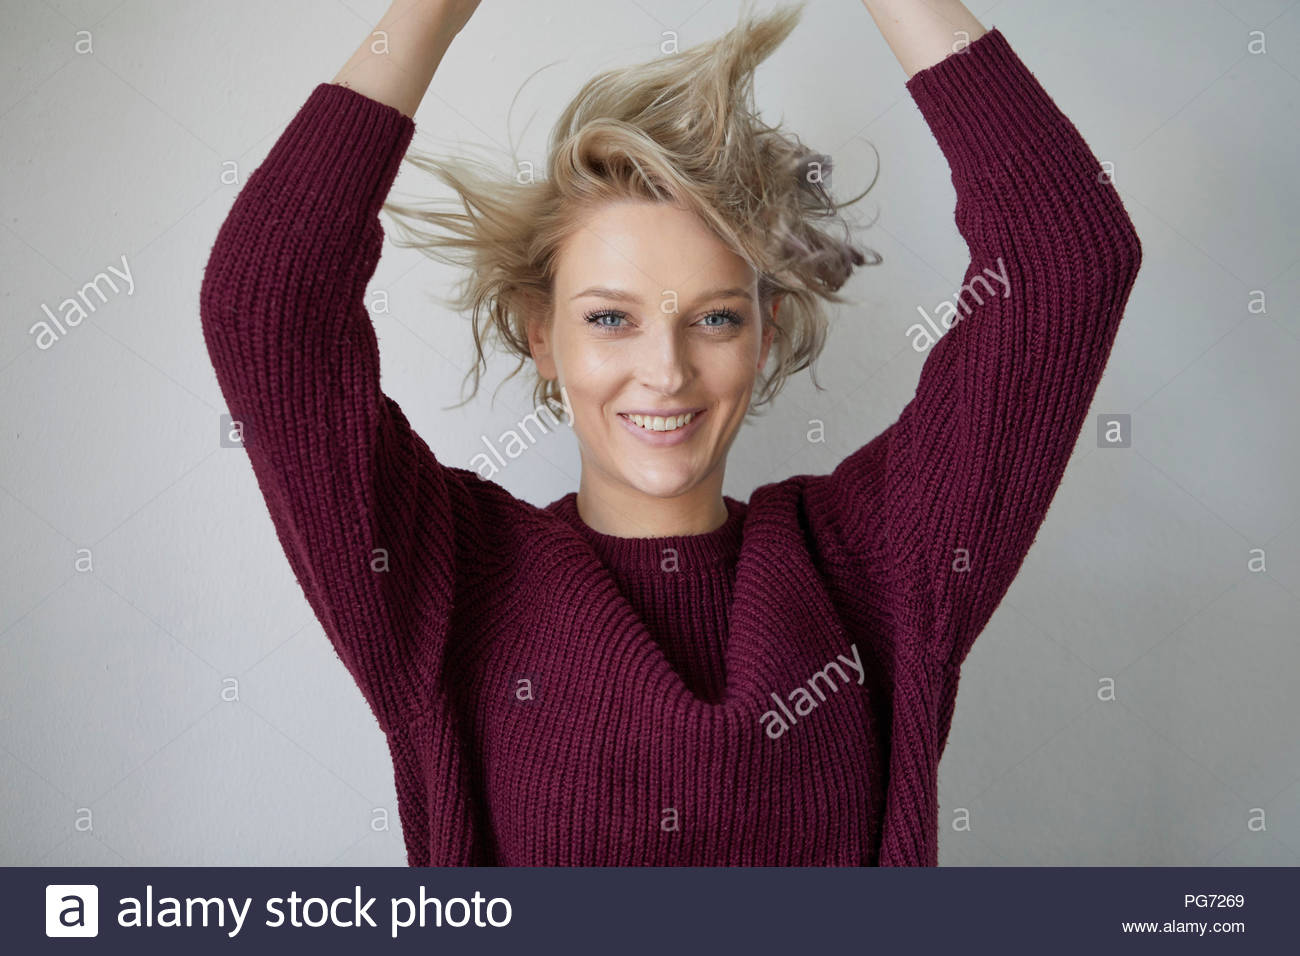 Portrait of smiling blond woman with tousled hair - Stock Image